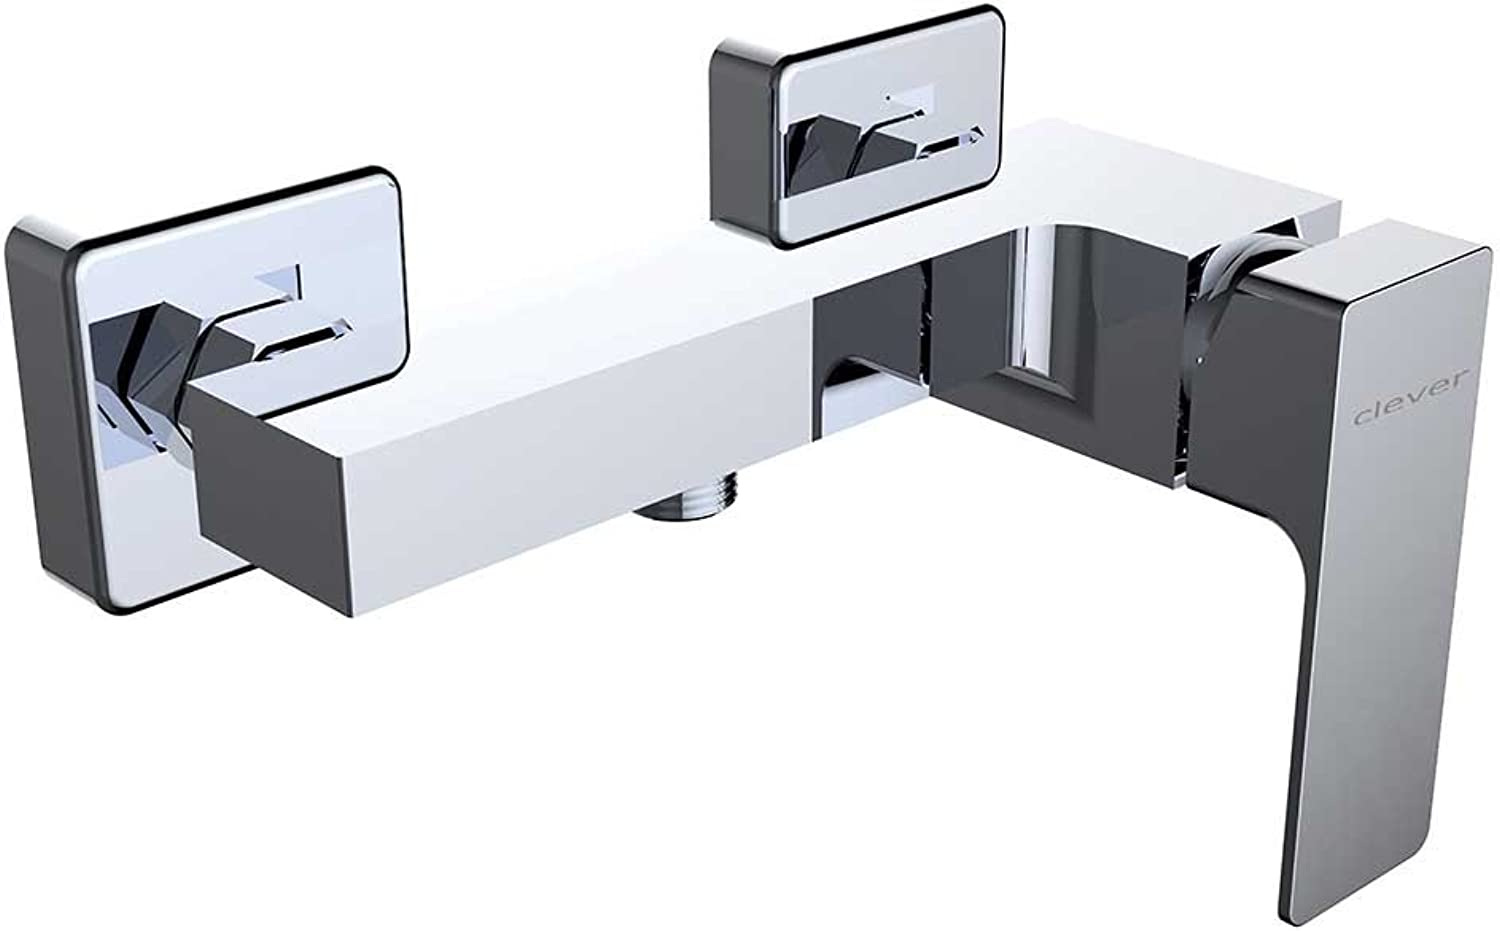 Clever 60126?Wall Shower Mixer Tap